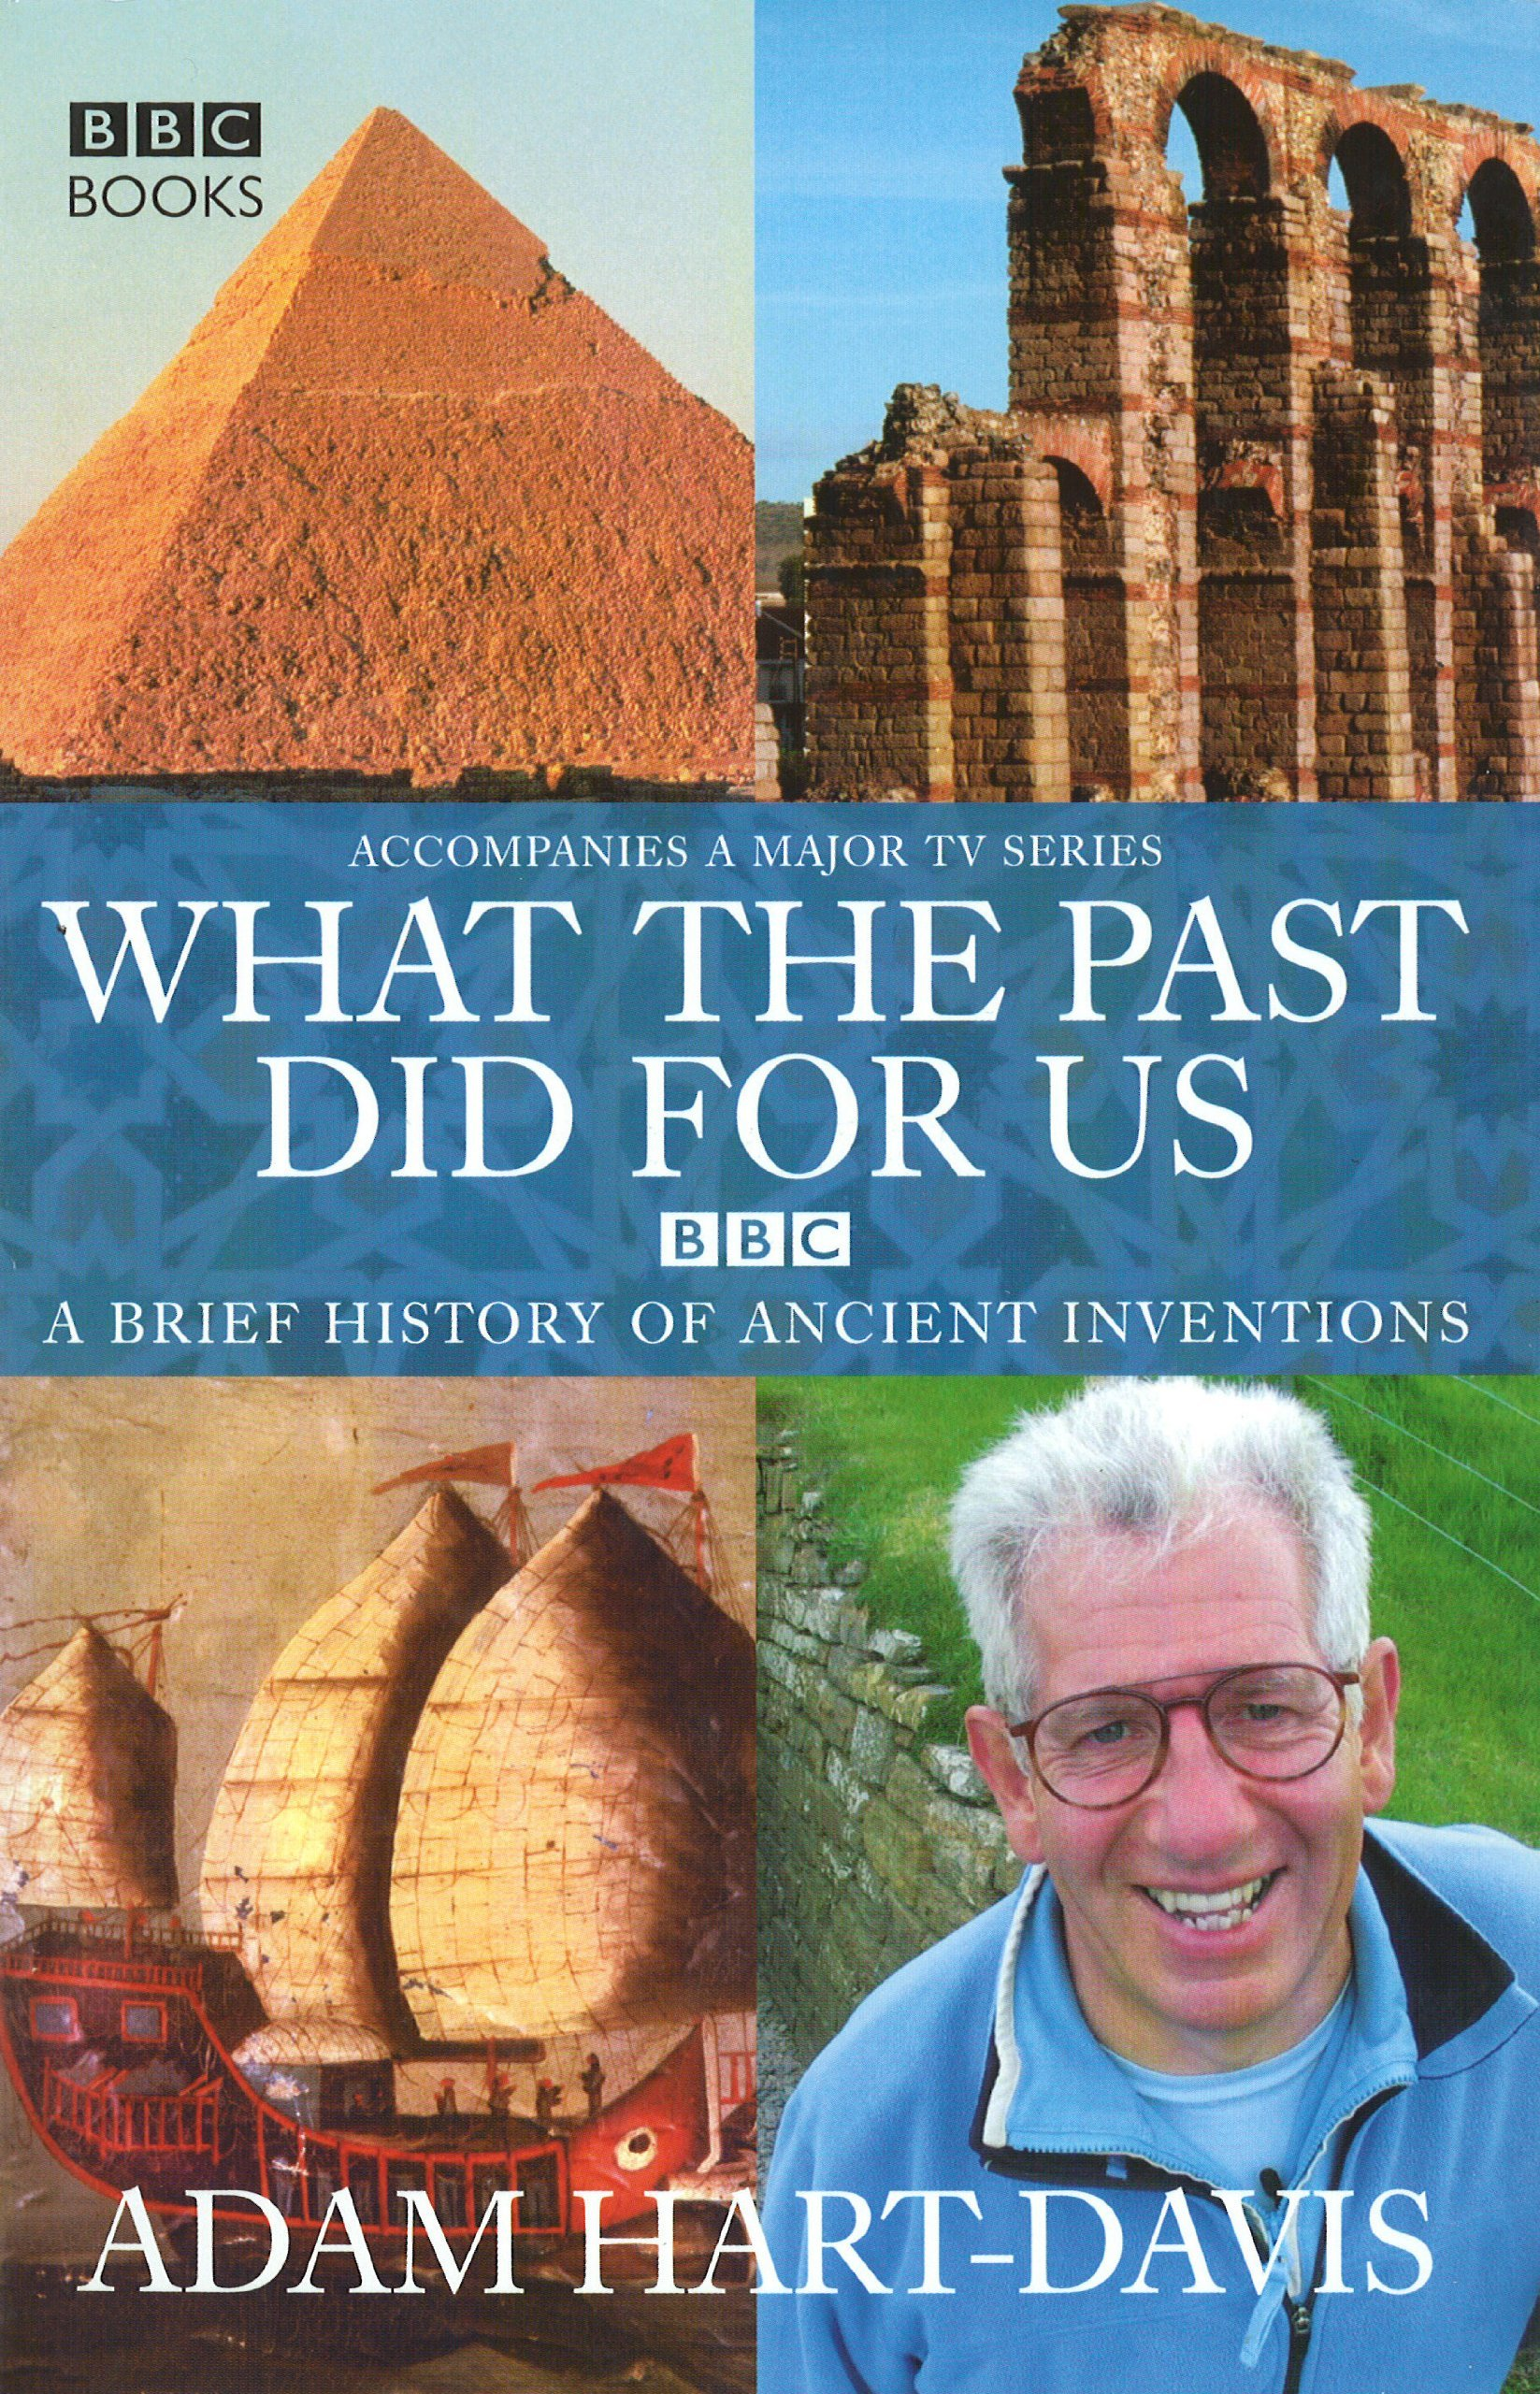 Download What the Past Did for Us: A Brief History of Ancient Inventions by Adam Hart-Davis (14-Oct-2004) Hardcover pdf epub